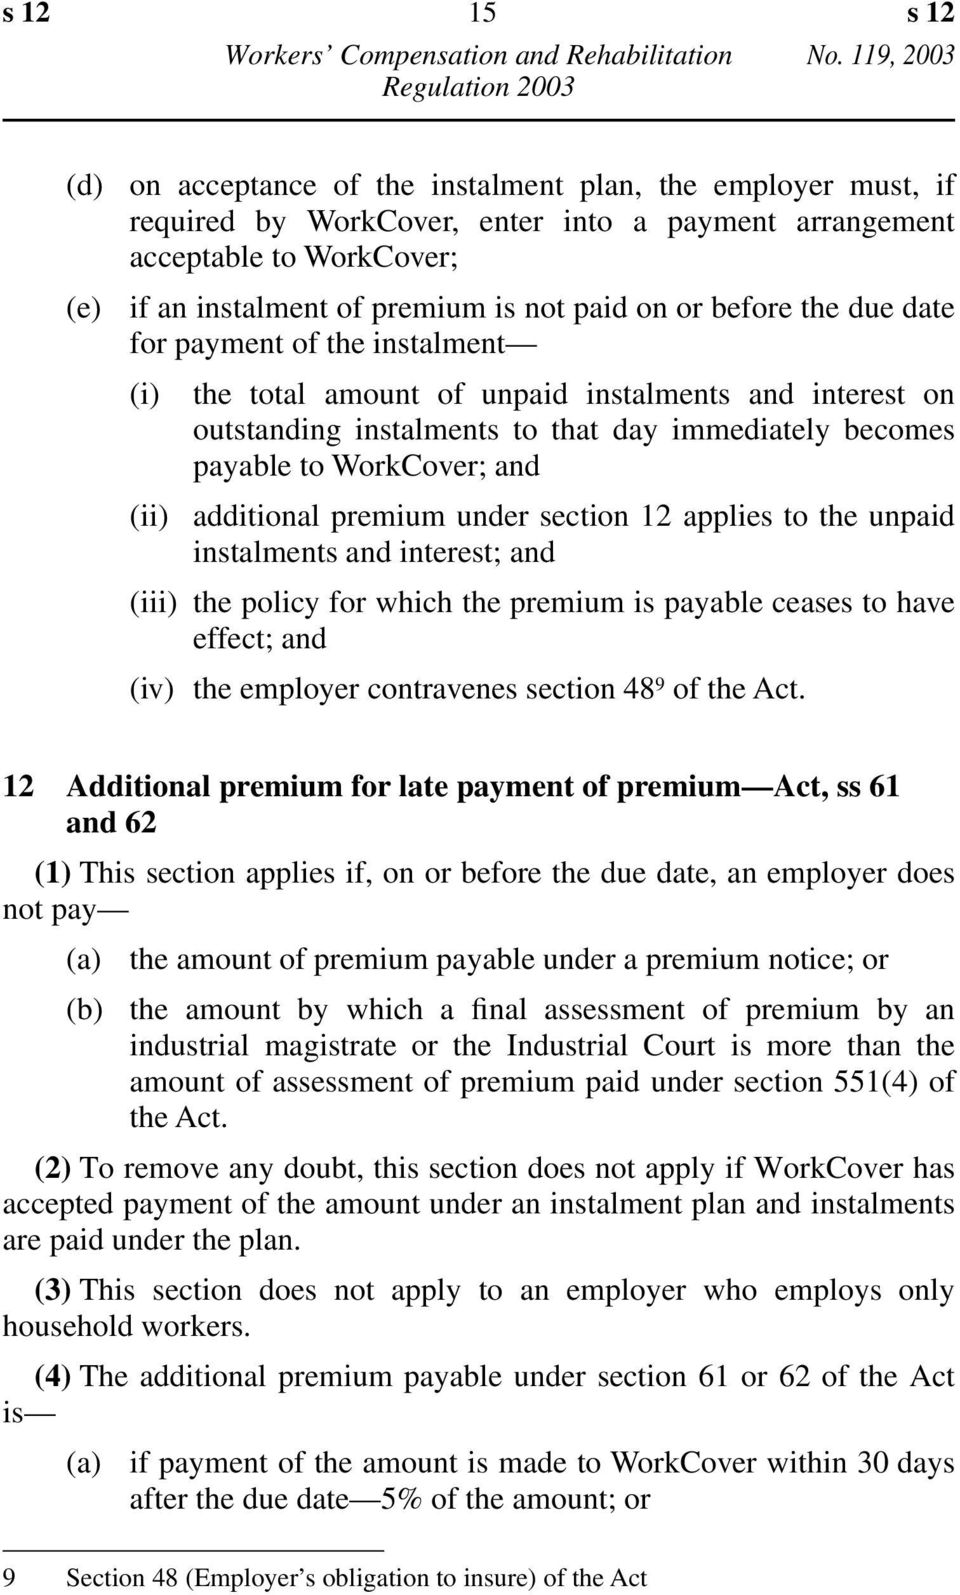 and (ii) additional premium under section 12 applies to the unpaid instalments and interest; and (iii) the policy for which the premium is payable ceases to have effect; and (iv) the employer